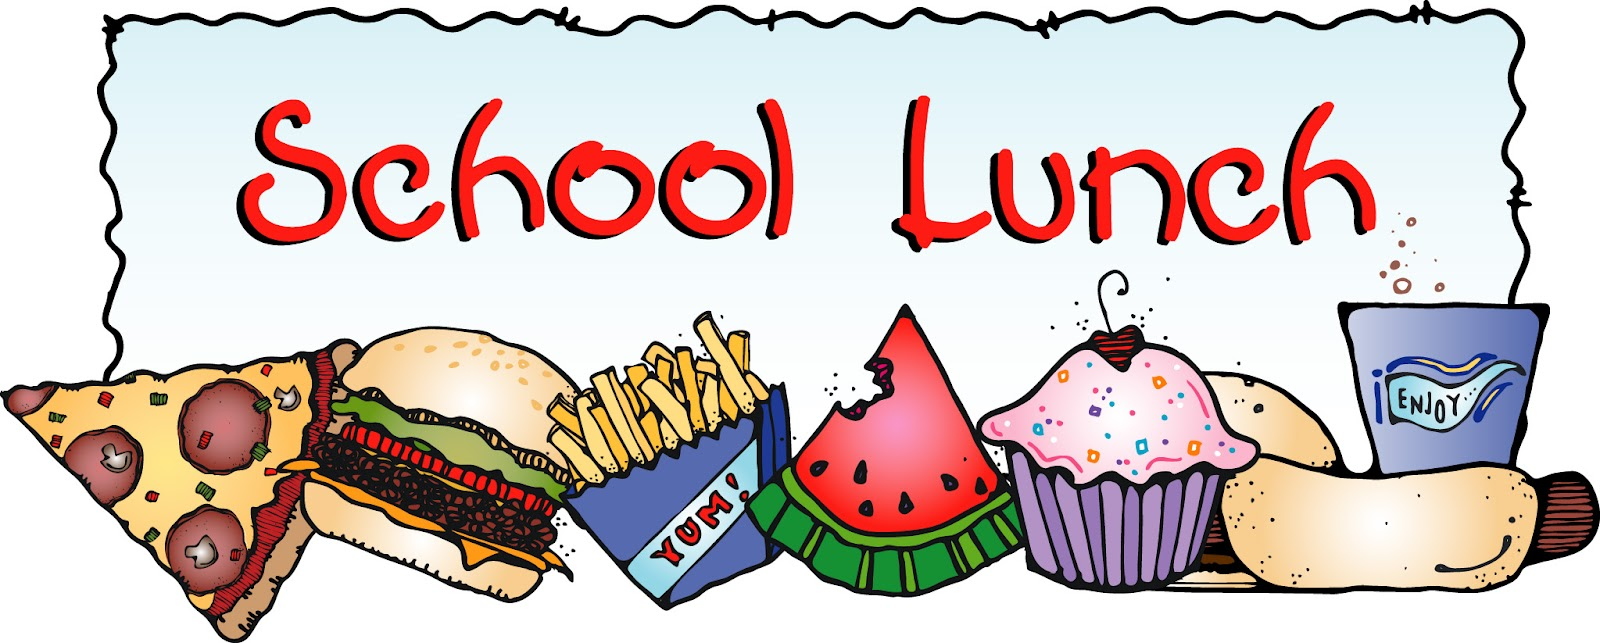 1600x643 Lunch Clip Art 6 Clipart Cliparts For You 3